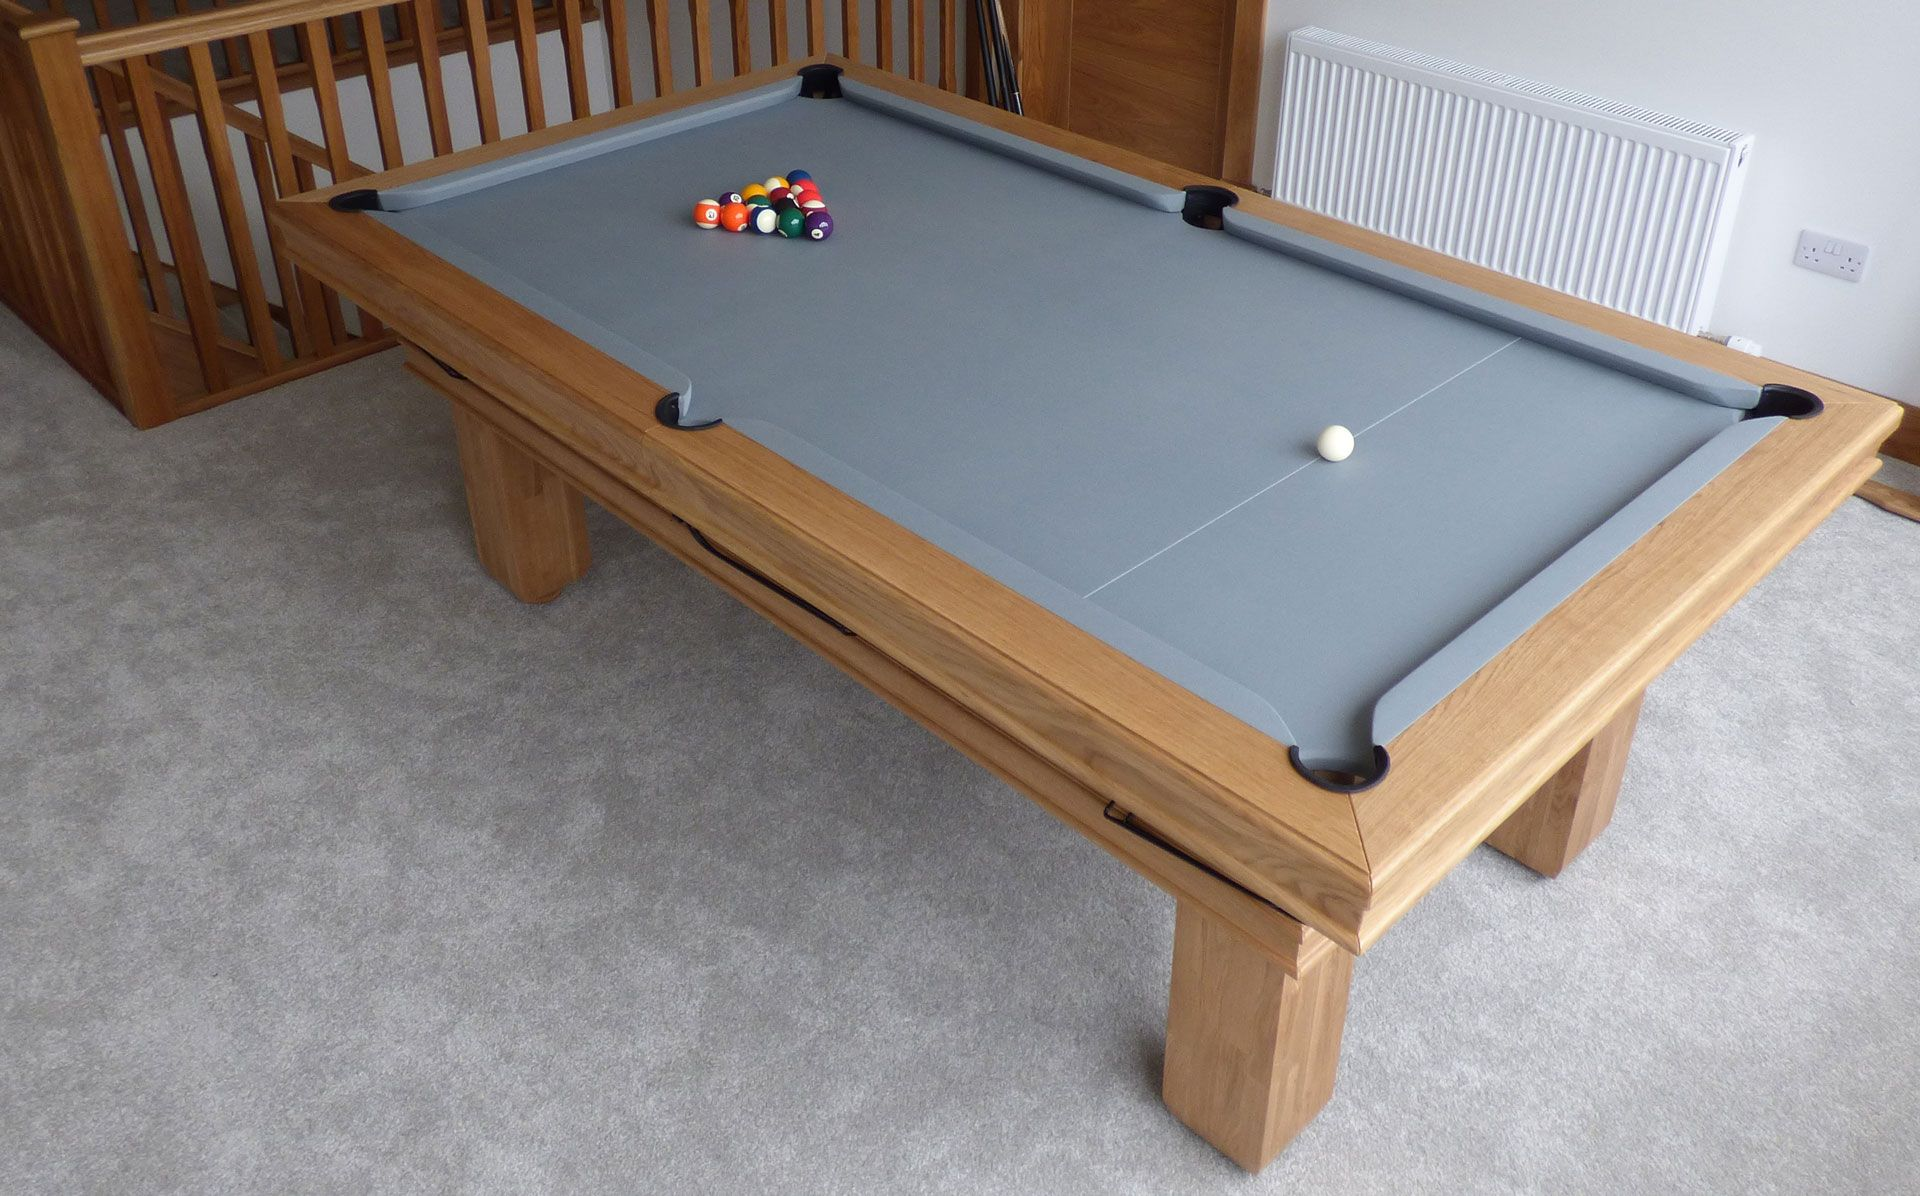 A 7 English Traditional Pool Table Made From Oak In